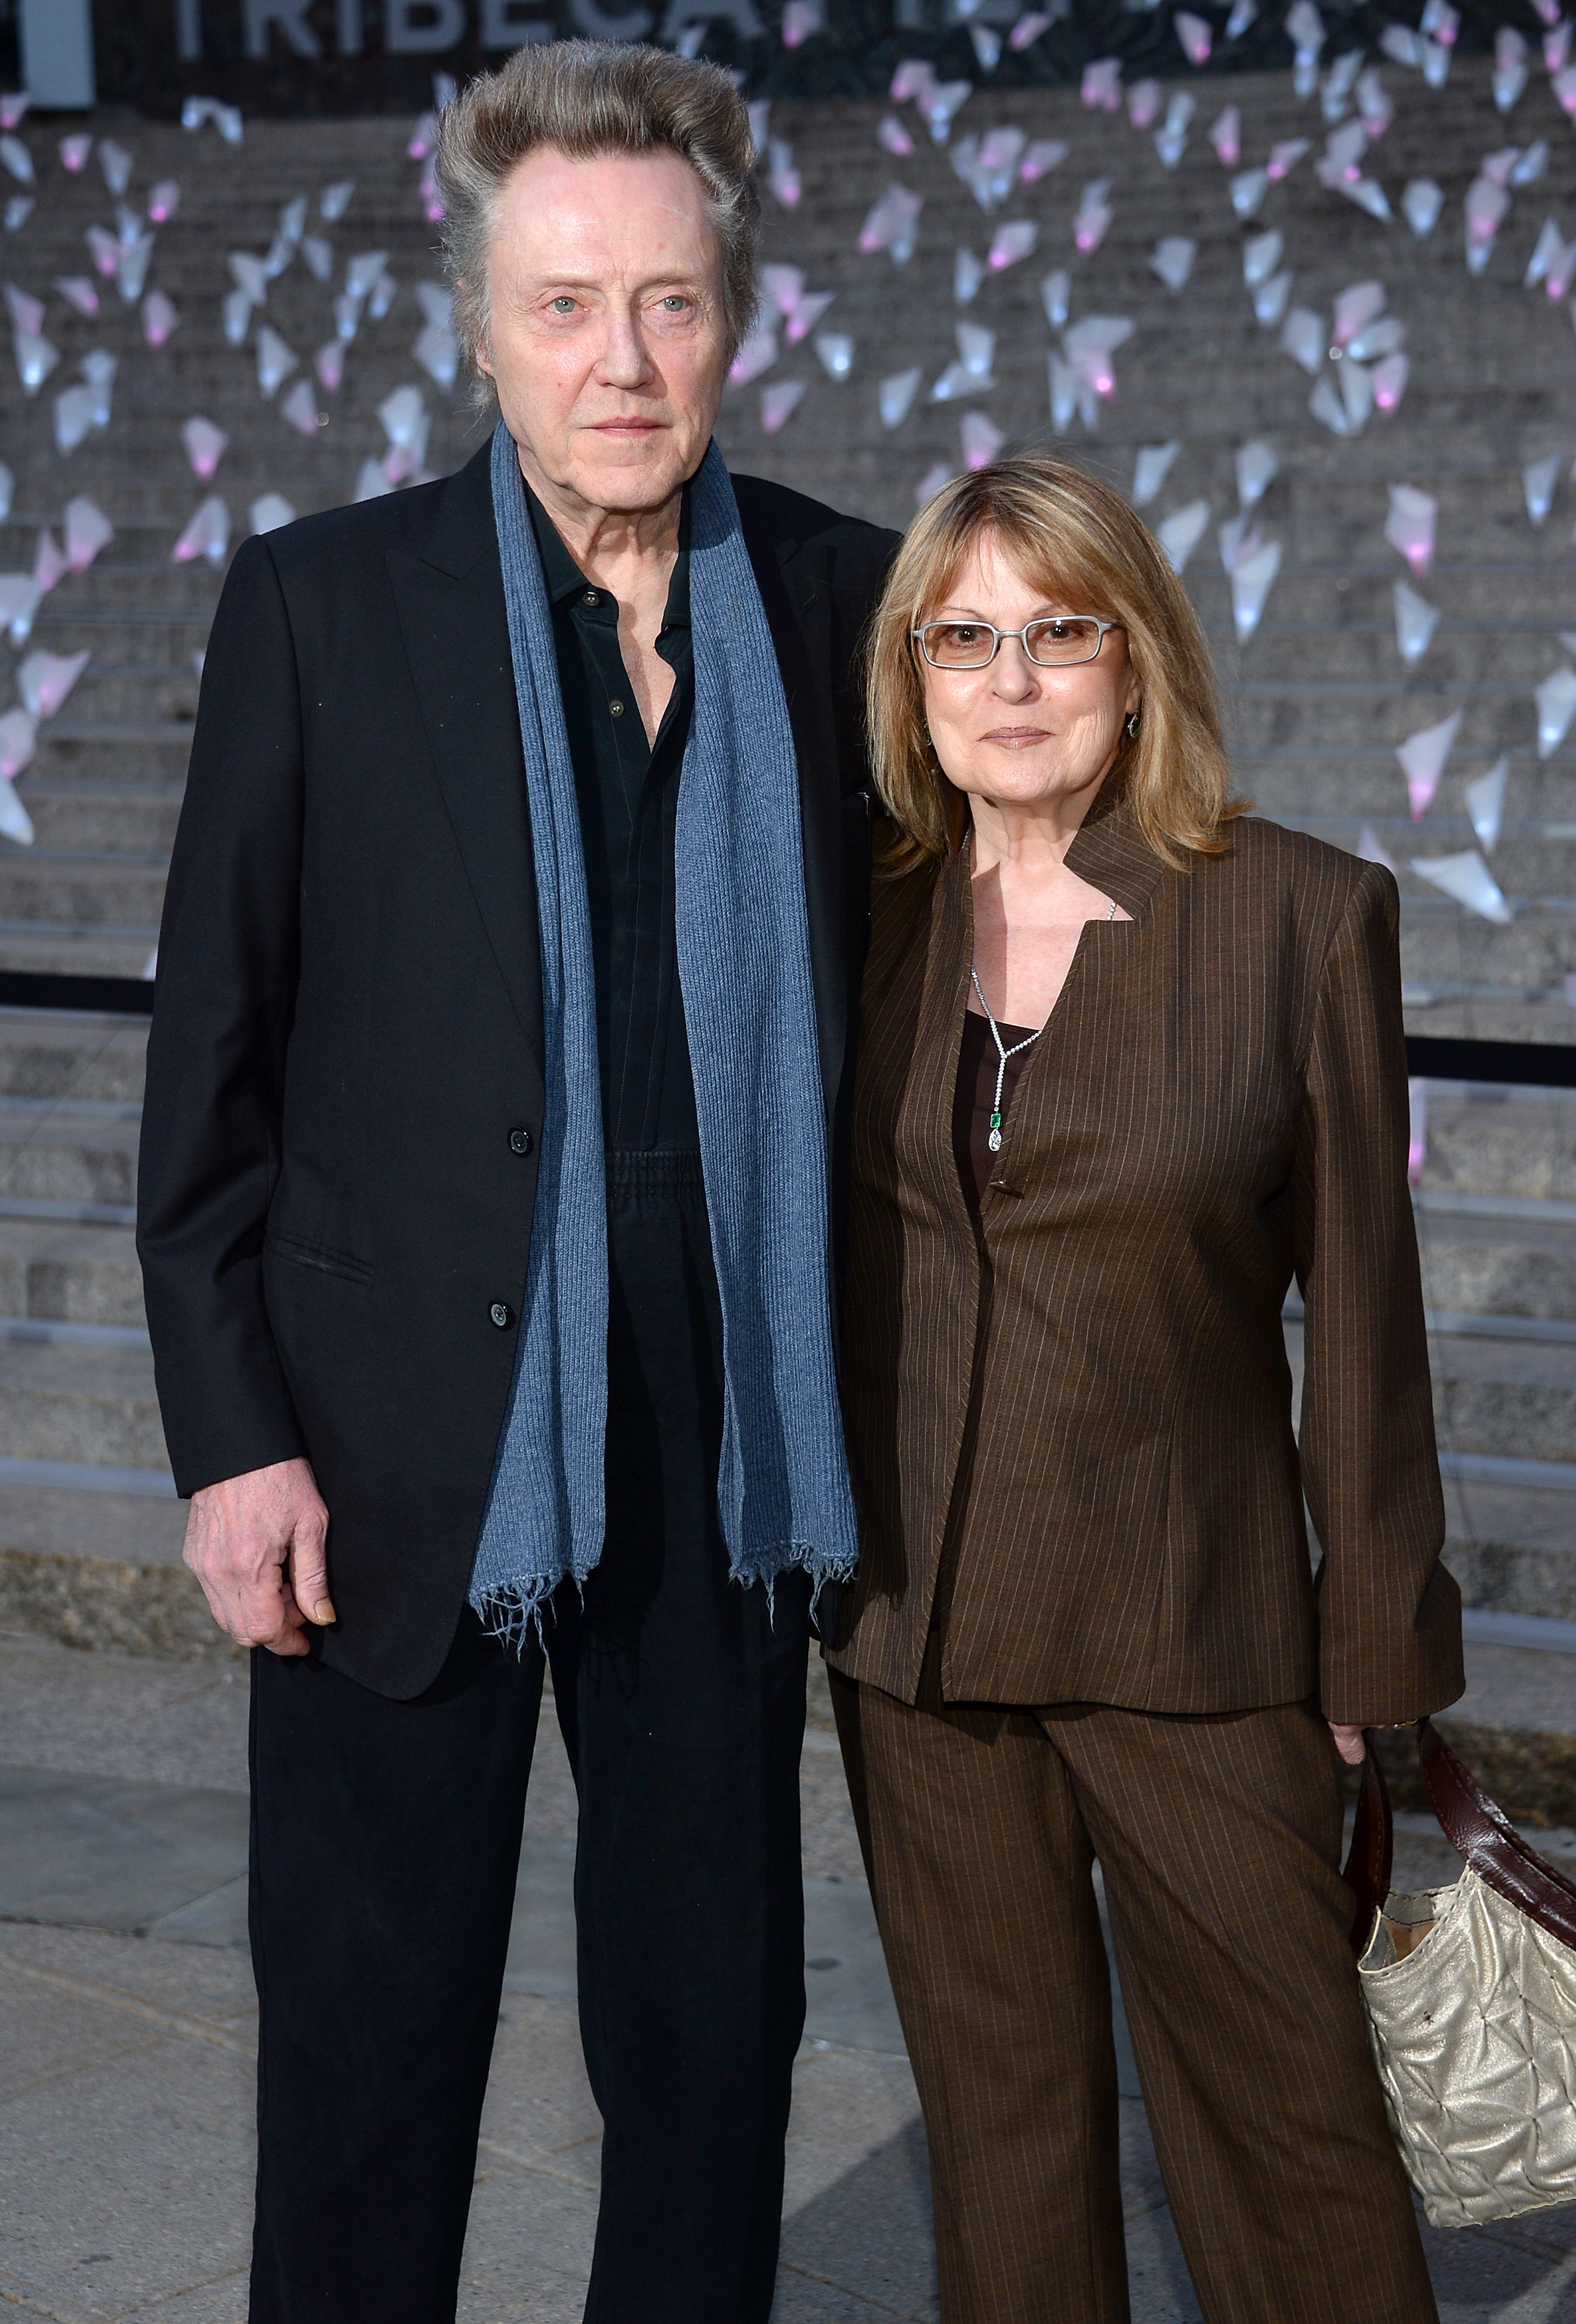 Christopher Walken attended the Vanity Fair party with his wife, Georgianne